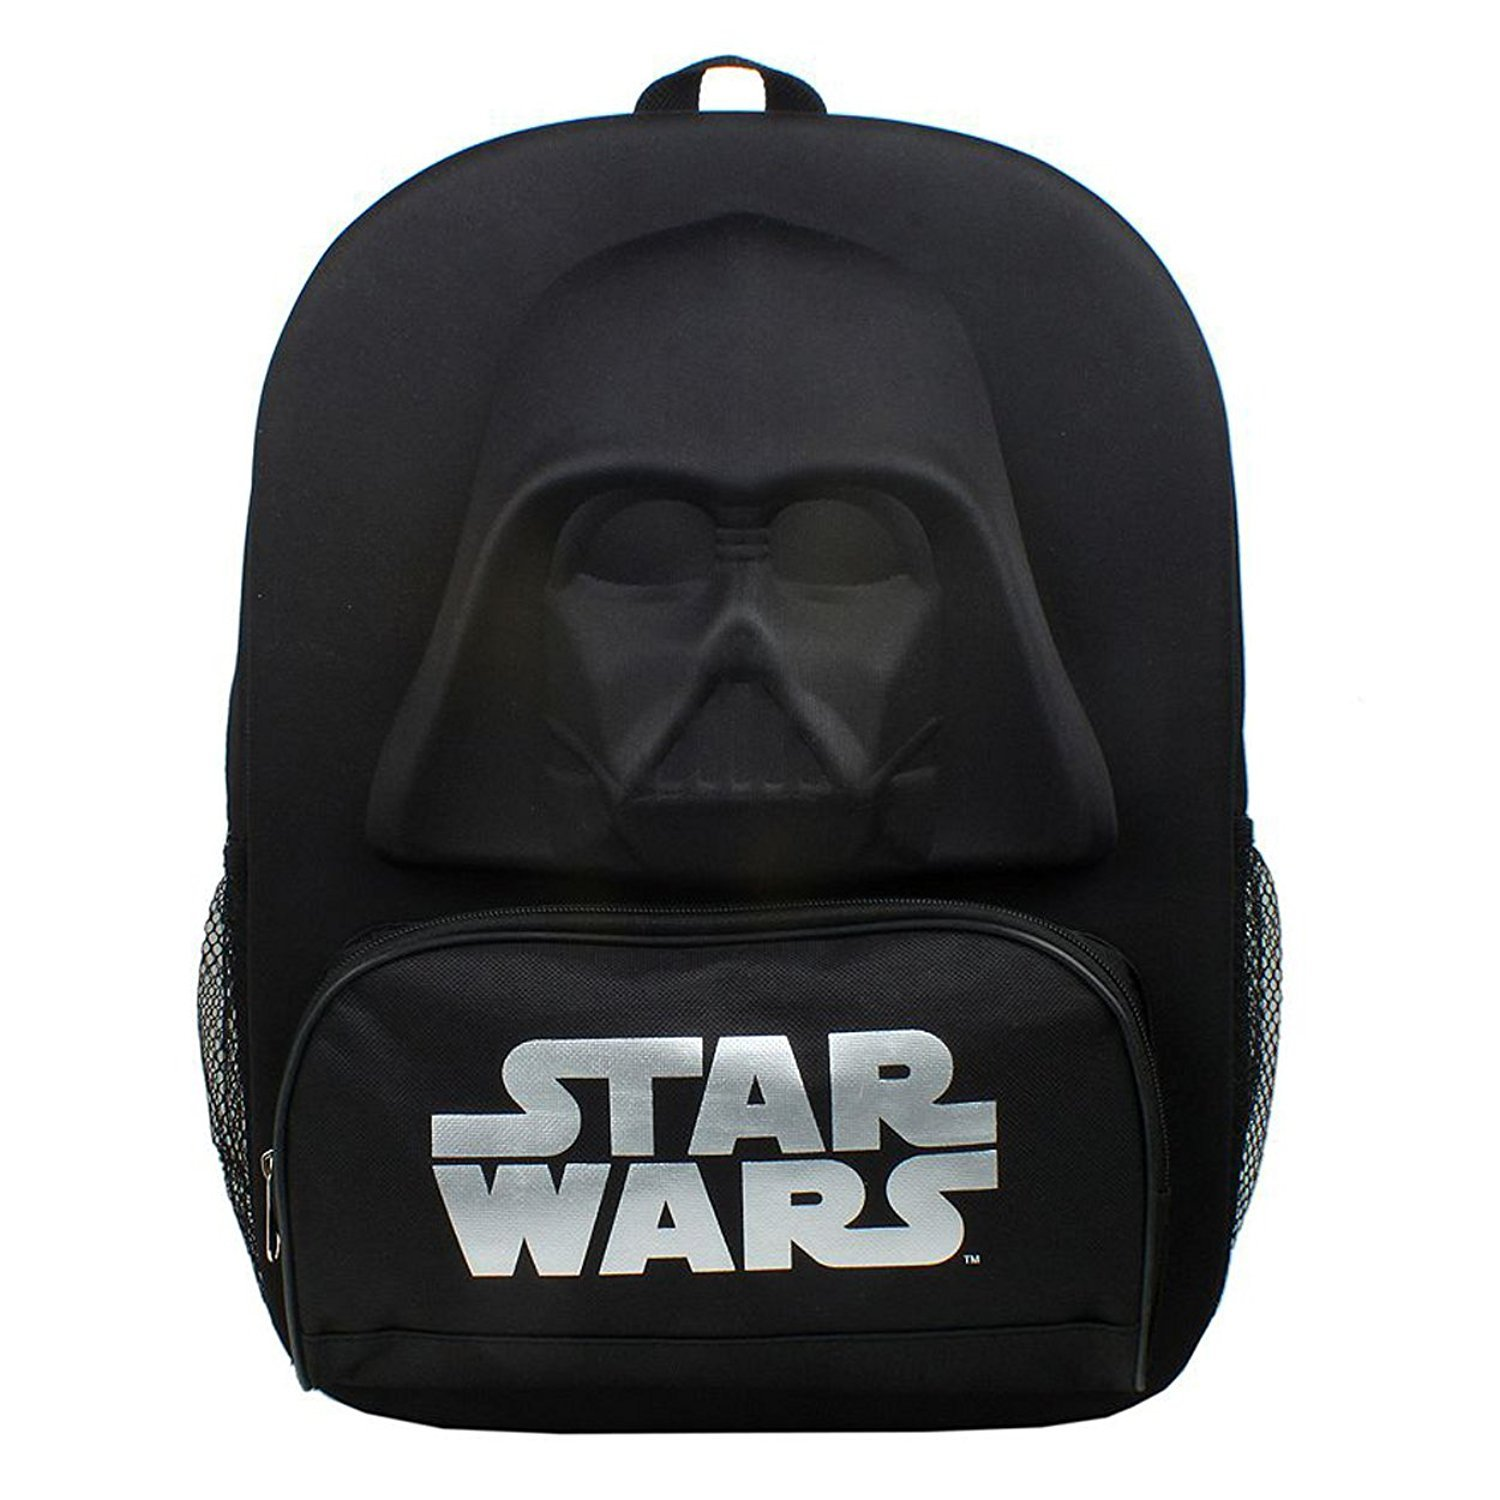 【本物新品保証】 [ディズニー]Disney Star Wars Star Darth Vader 16 inch Darth Backpack [並行輸入品] [並行輸入品] Black Star Wars Darth Vader B012OI8JBW, Billboard e-shop:ab1a1dae --- arianechie.dominiotemporario.com